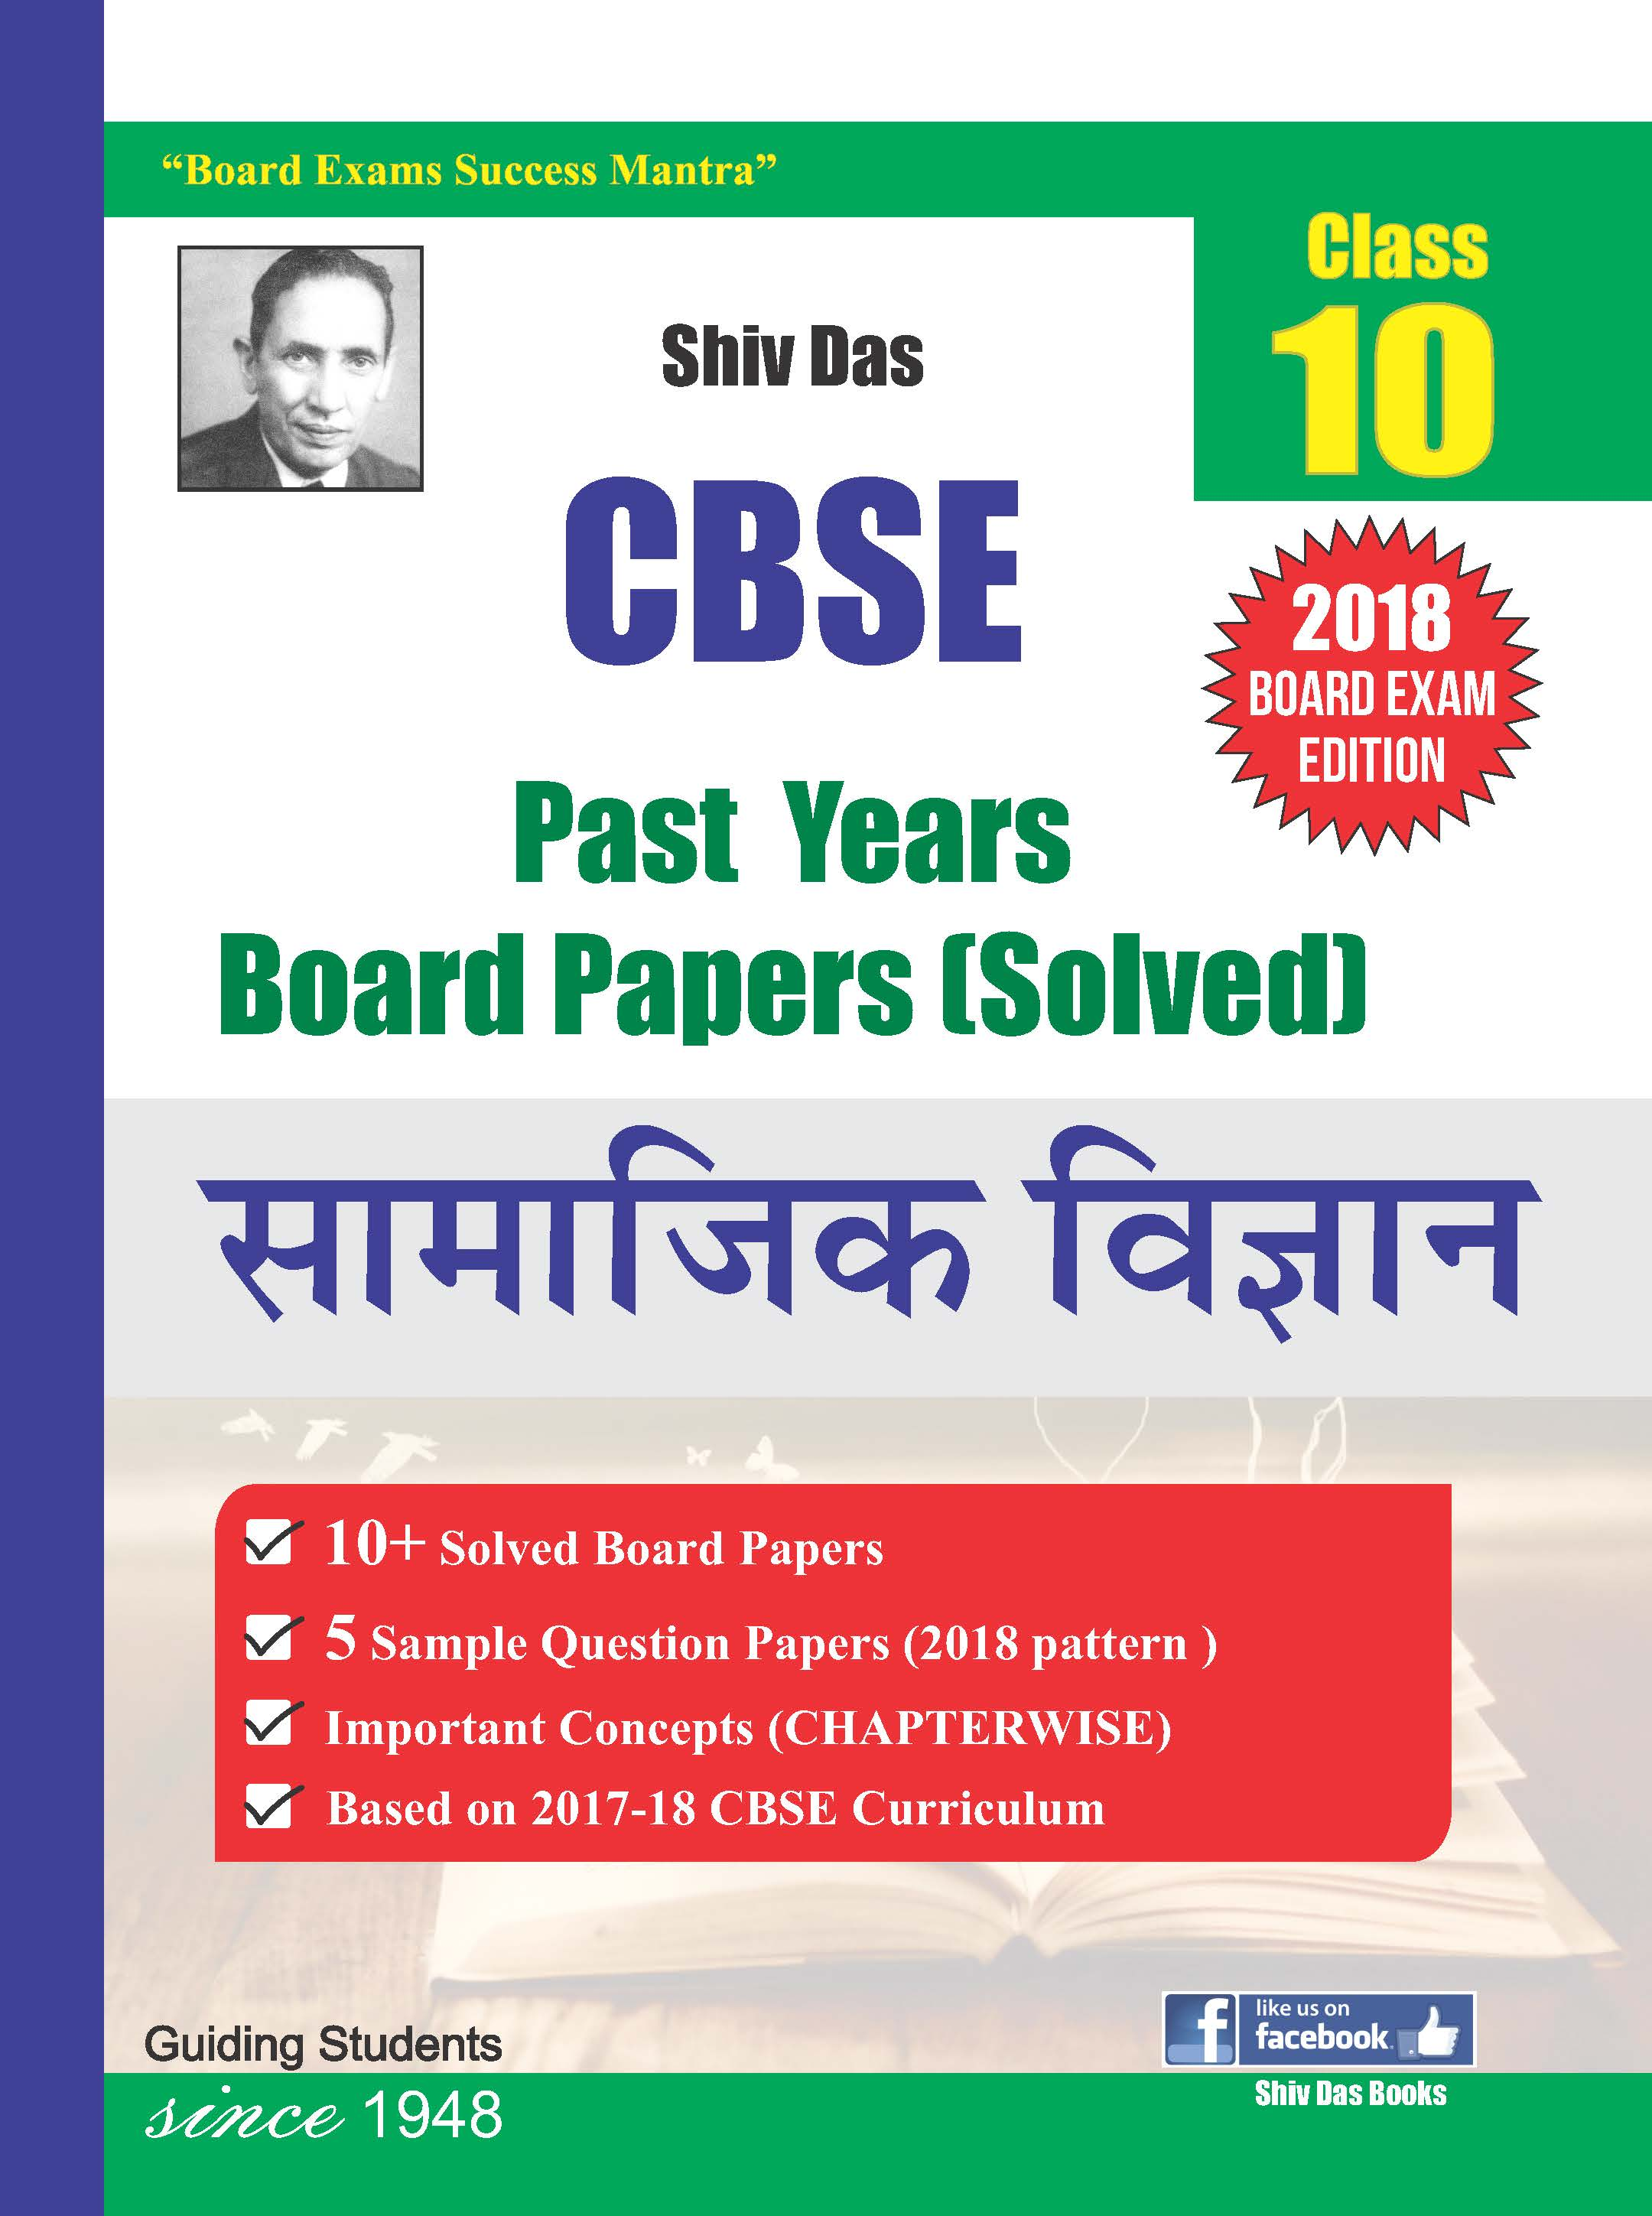 Class 10 CBSE Past Year Board Papers (Solved) Social Science (Hindi Medium)